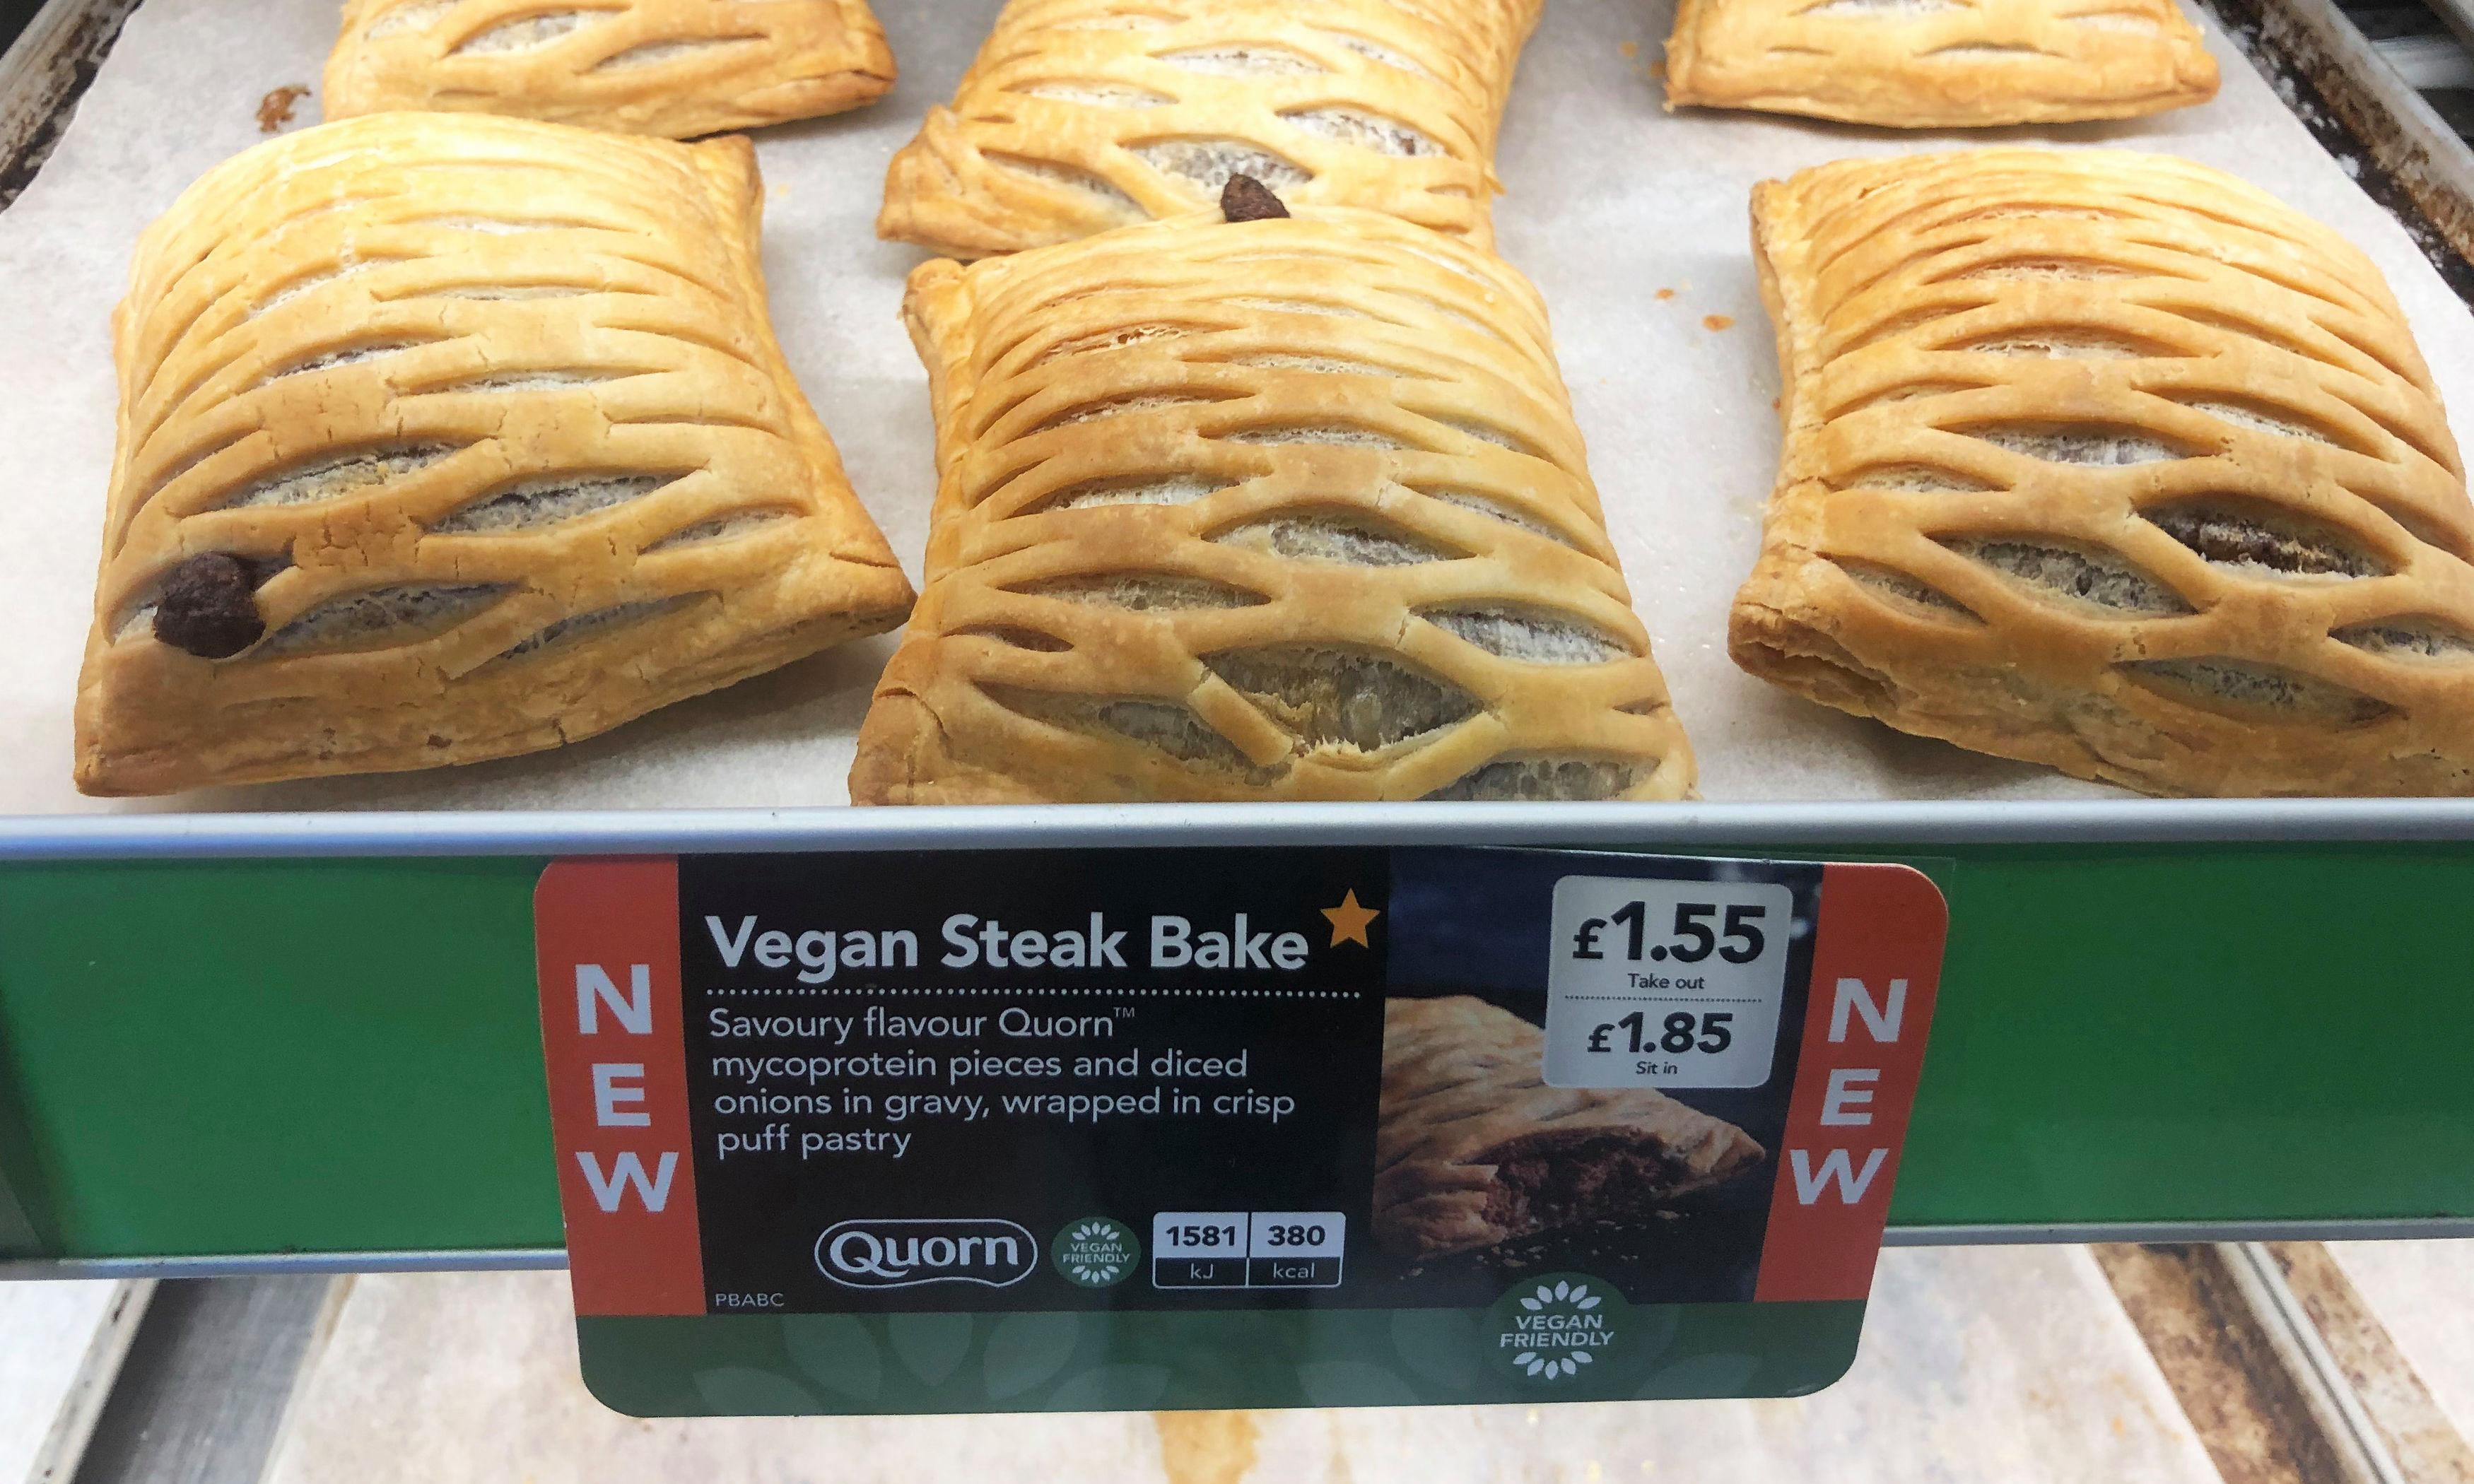 Veganuary is huge. But is it really as simple as animal foods bad, plant foods good?